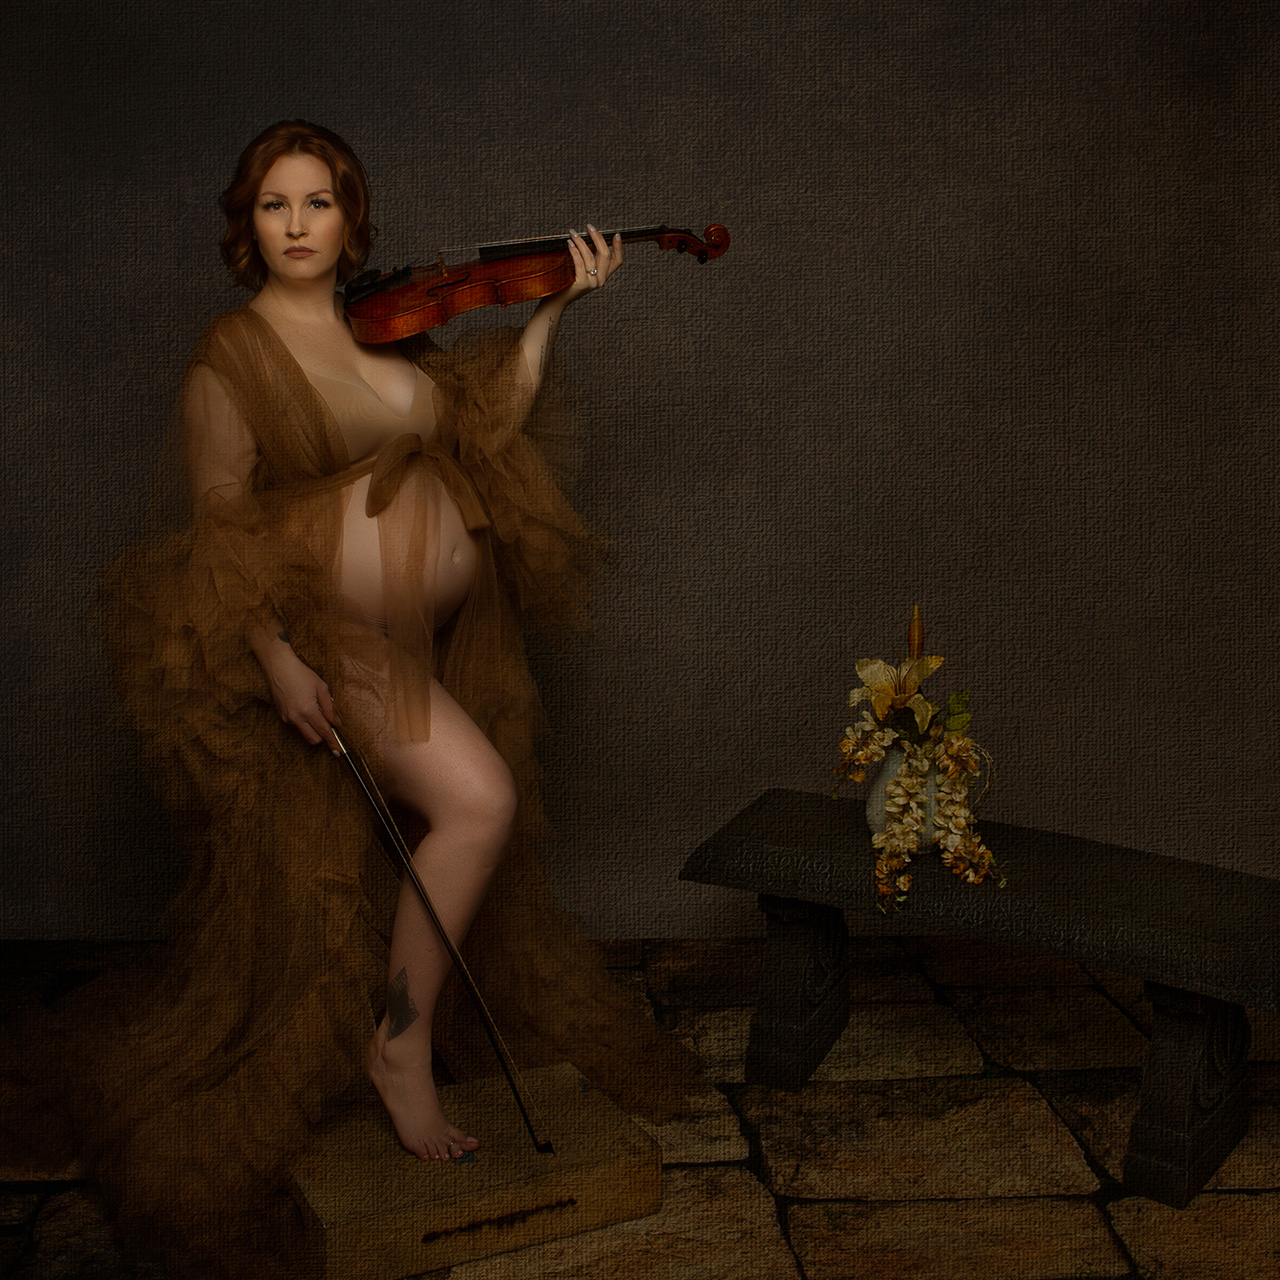 Los Angeles Maternity photographer, Leona Darnell, shows an image of a pregnant mother holding a violin.